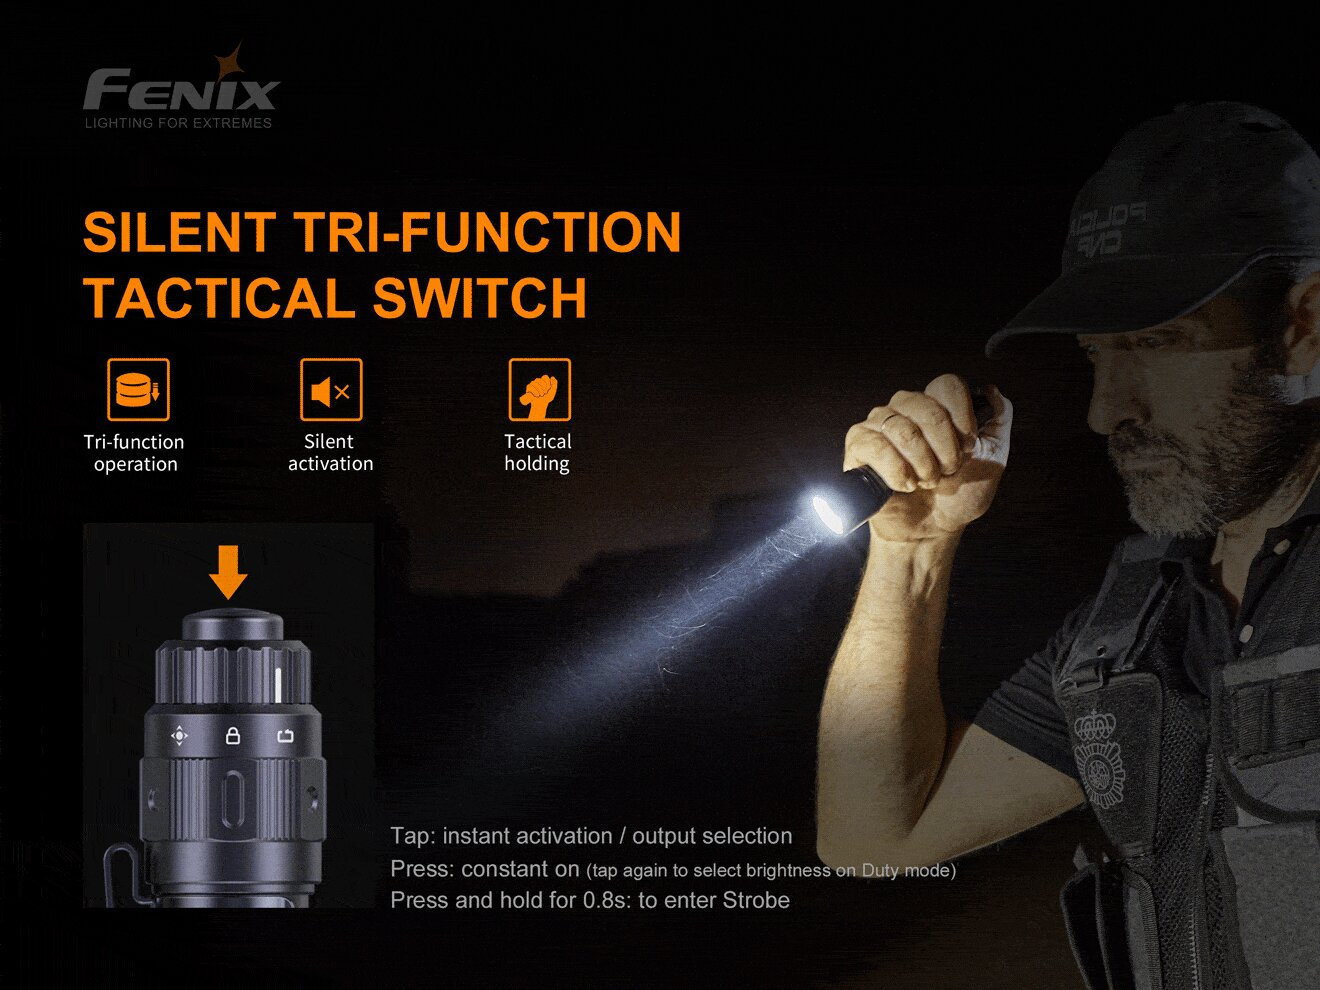 Fenix TK11 TAC LED Torch Light in India, 1600 Lumens Tactical Outdoor Work, Search & Law Enforcement Torch, Tough Rechargeable Flashlight